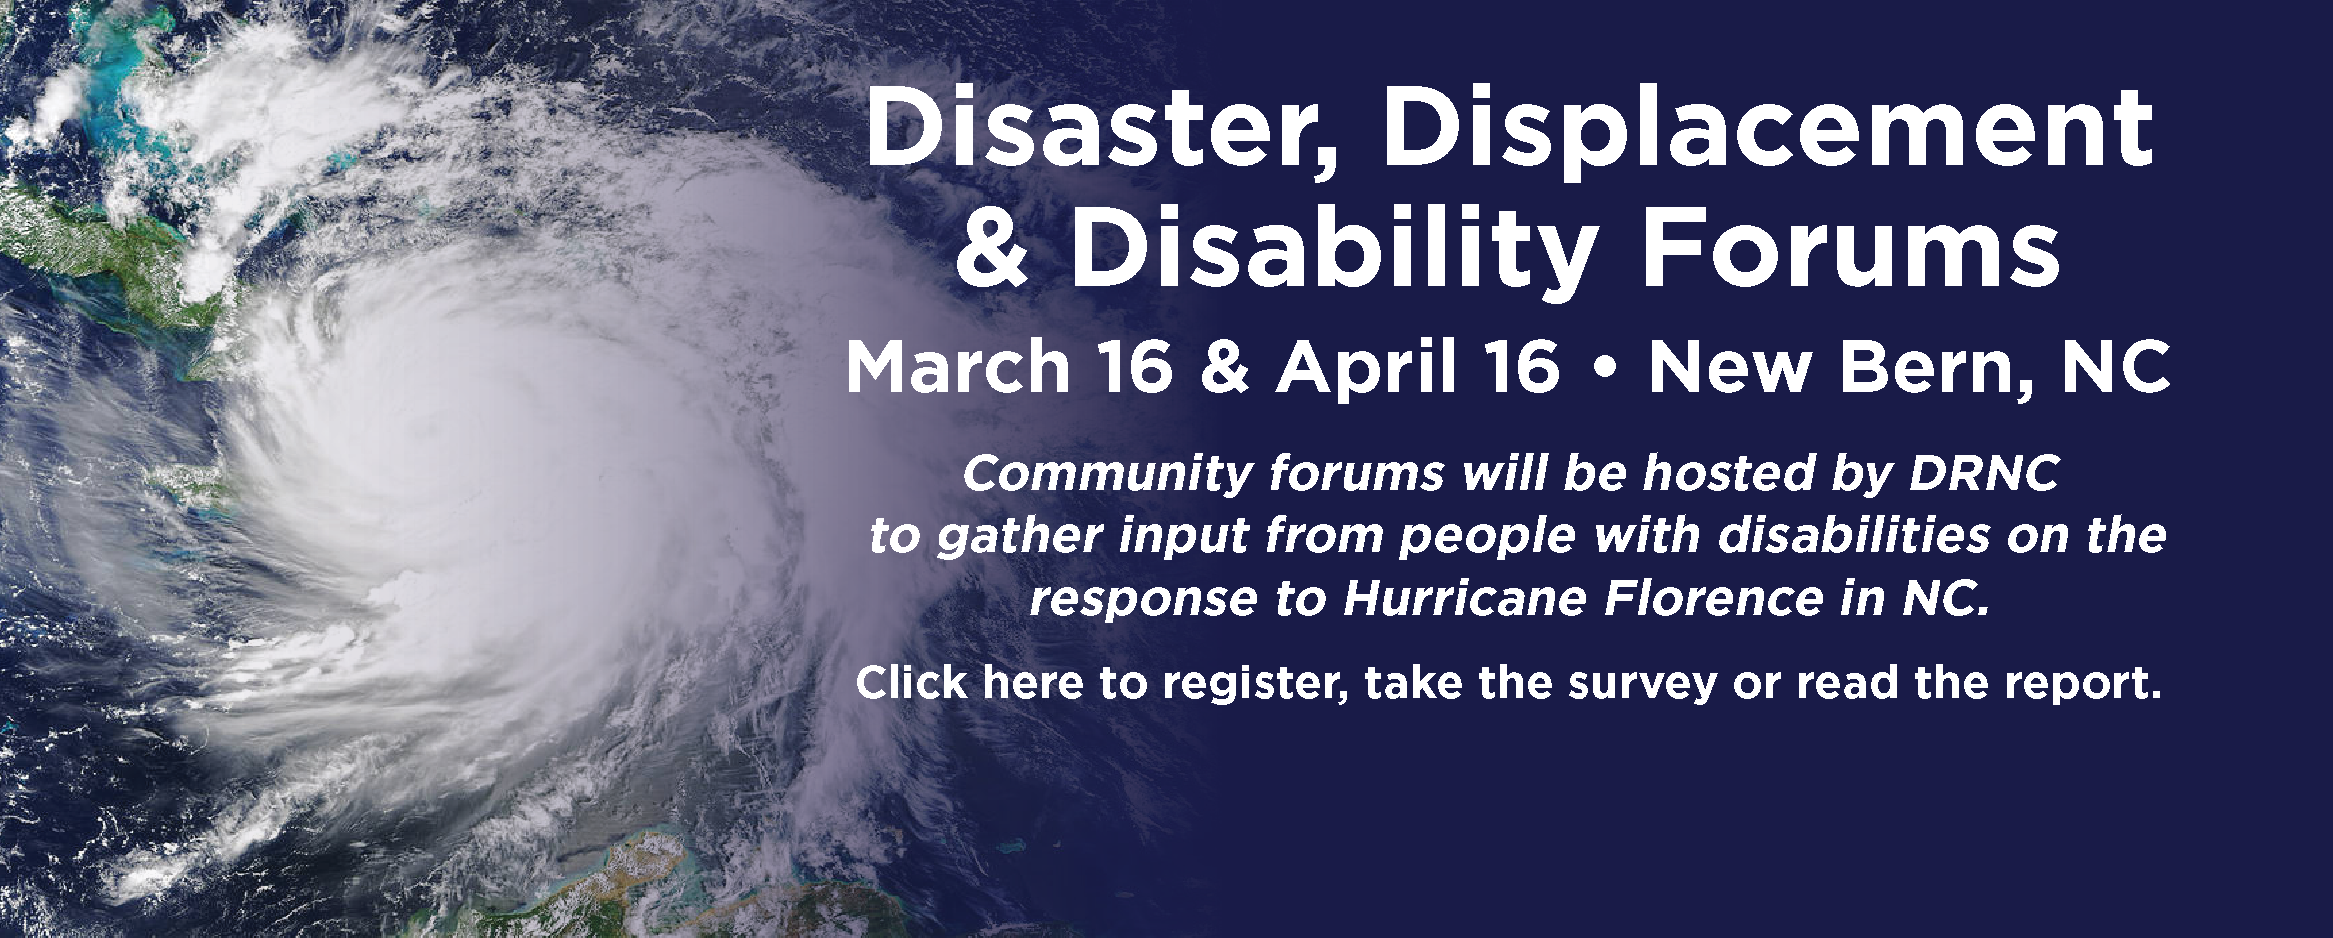 Disaster, Displacement & Disability Forums hosted by DRNC